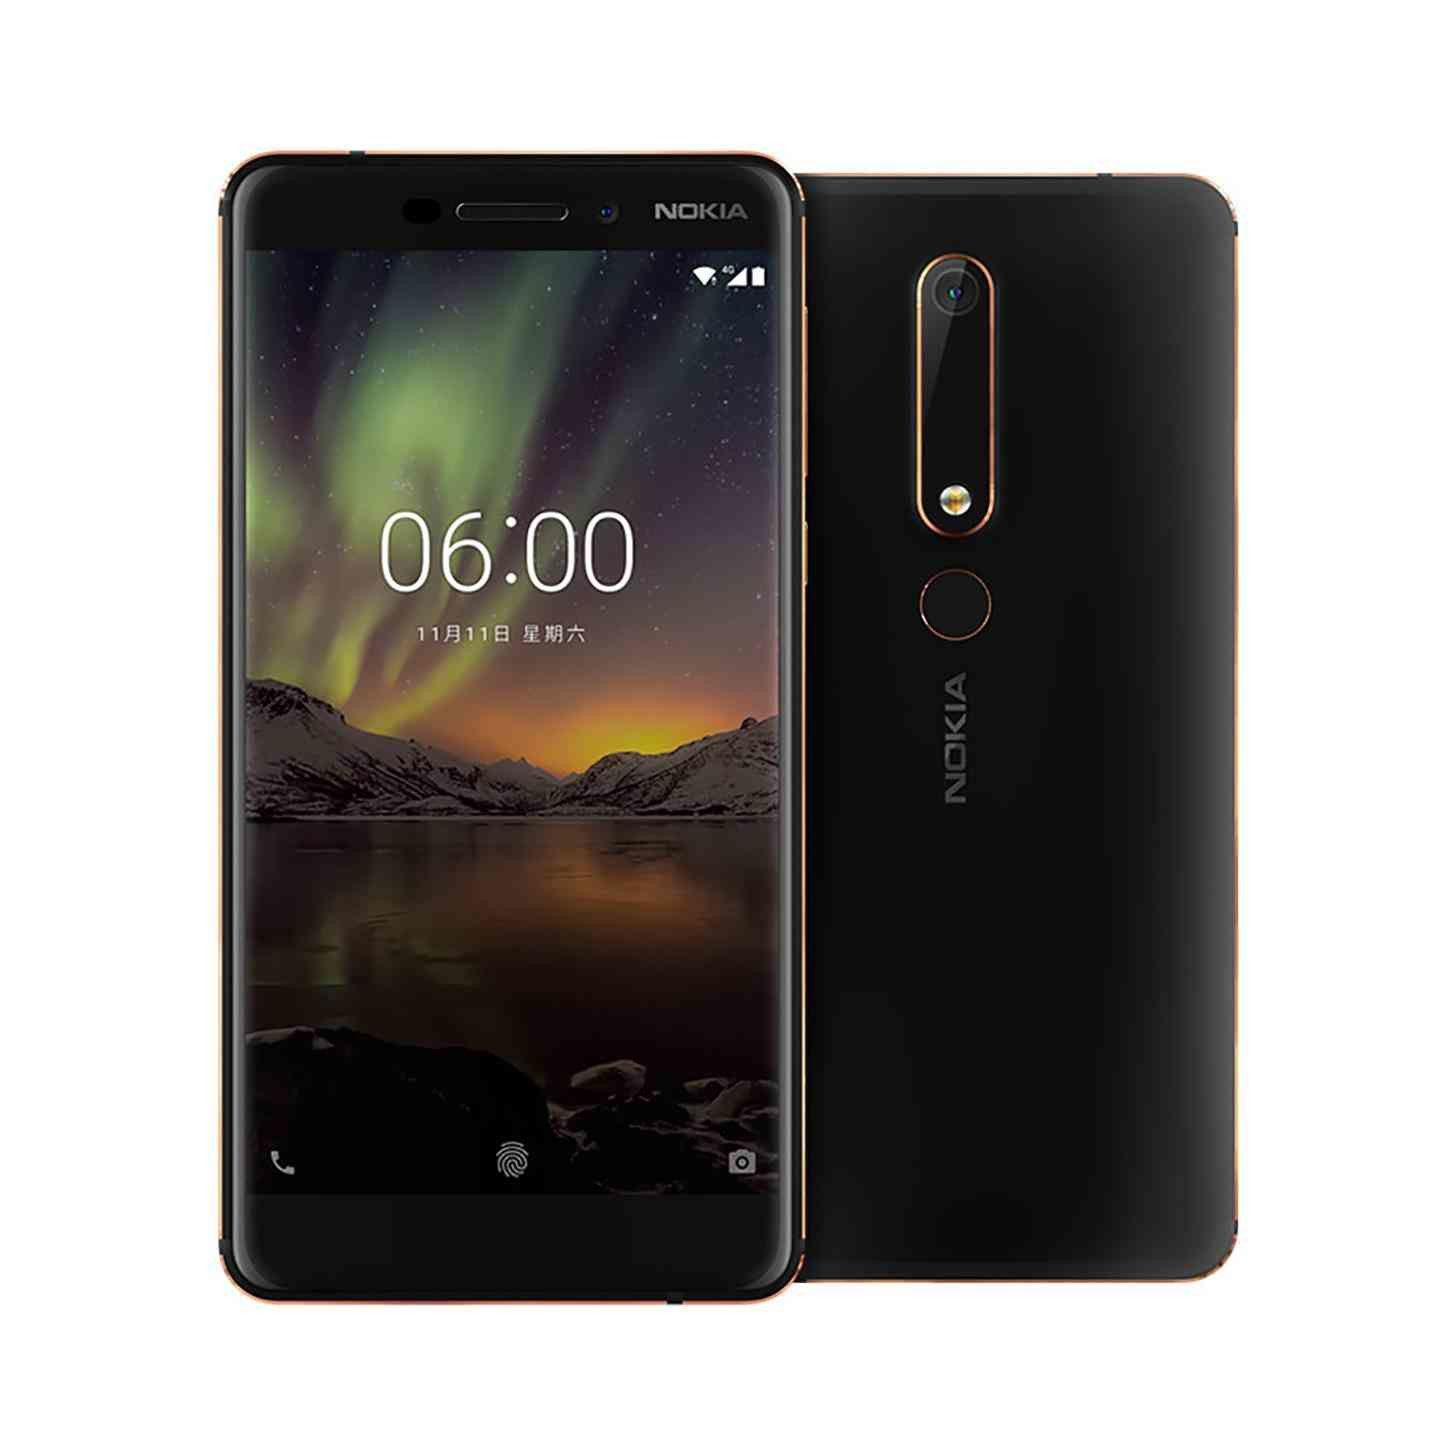 Nokia 6.1 Receives Price Cut in India Ahead of Nokia 6.1 Plus Launch Next Week